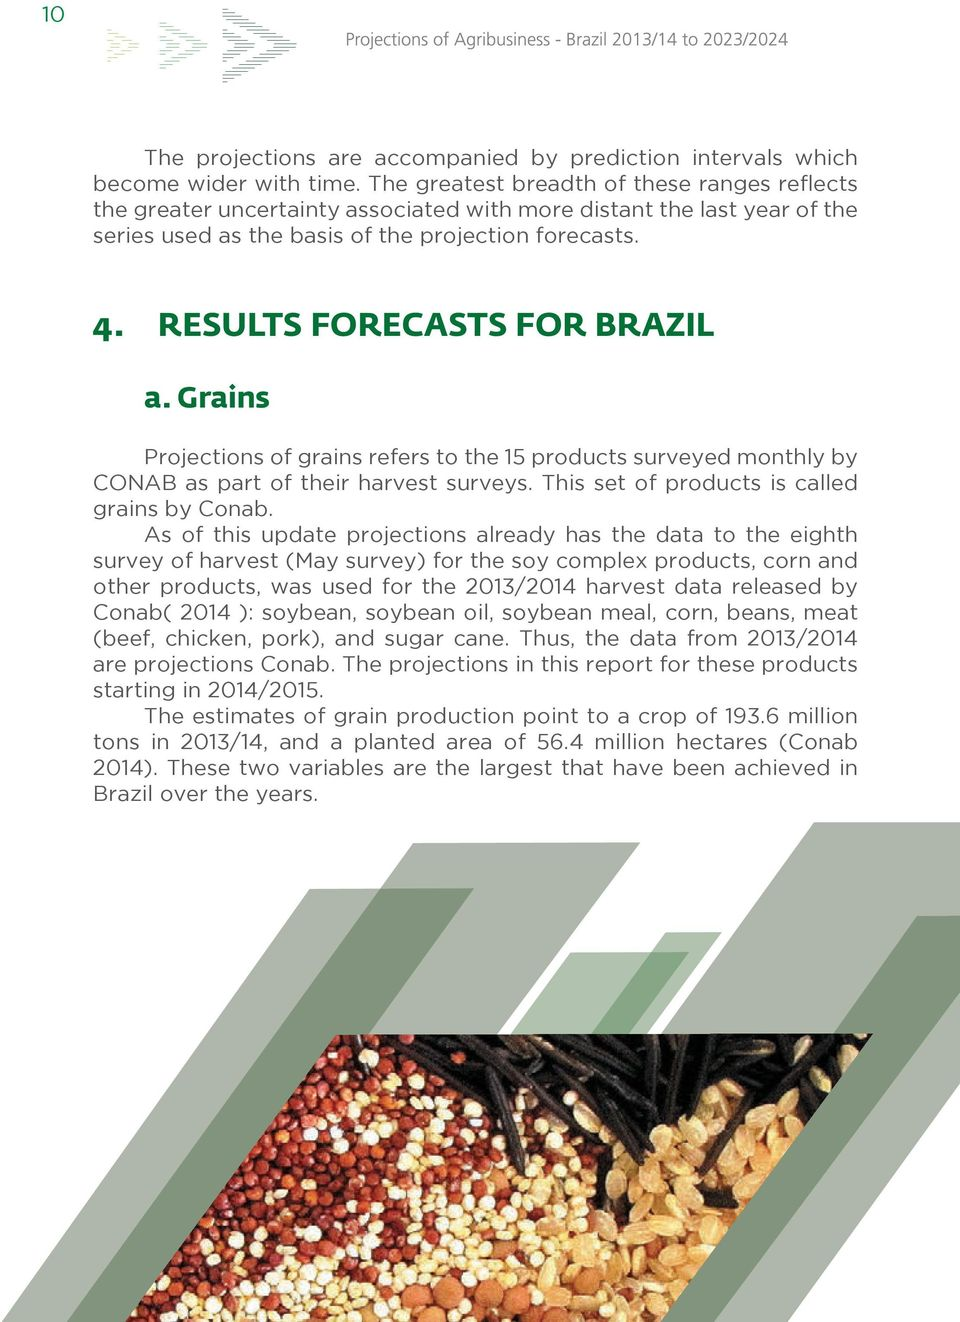 RESULTS FORECASTS FOR BRAZIL a. Grains Projections of grains refers to the 15 products surveyed monthly by CONAB as part of their harvest surveys. This set of products is called grains by Conab.